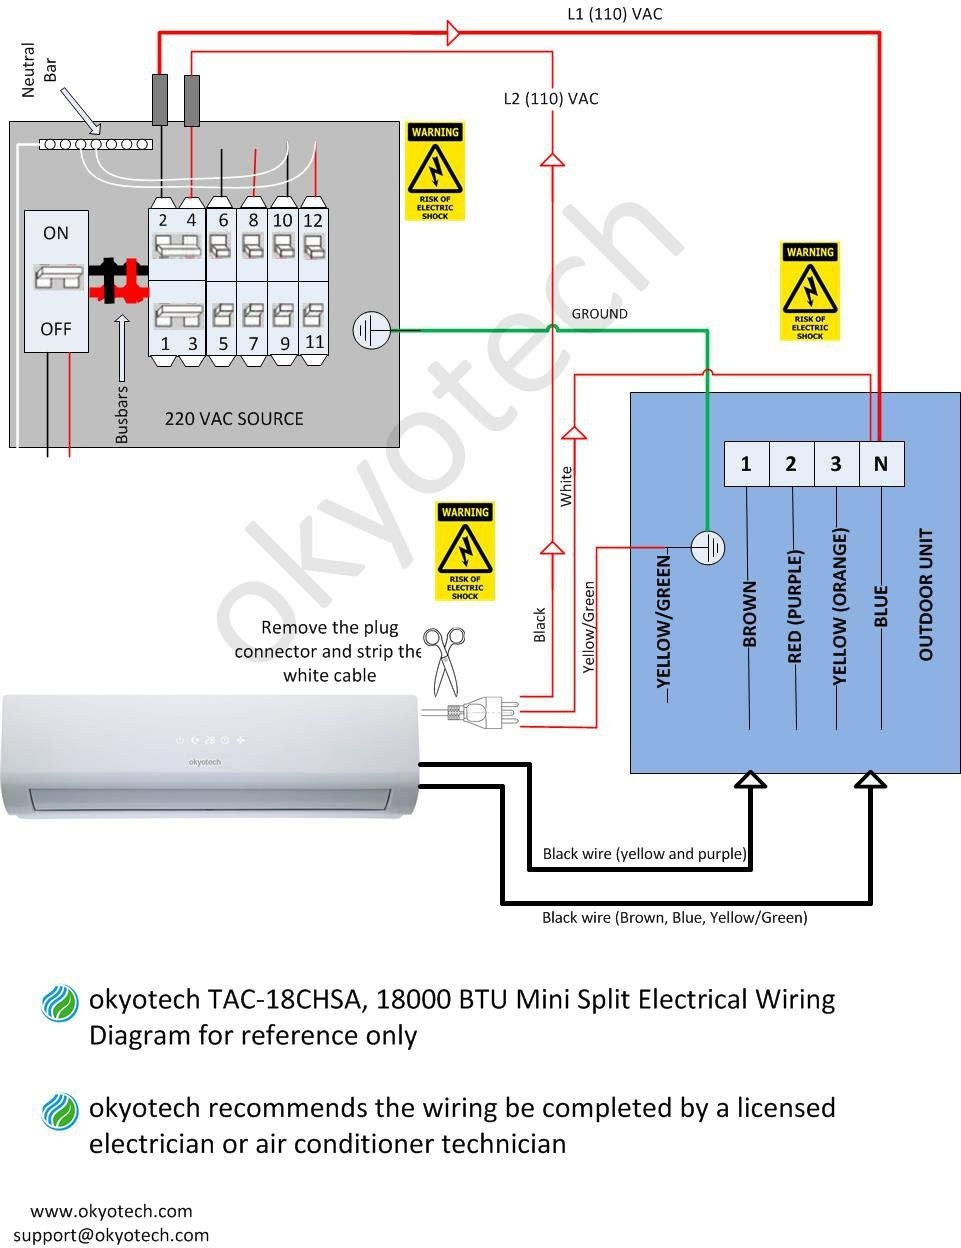 lcd tv installation diagram ac installation diagram fujitsu mini split heat pump wiring diagram | free wiring ... #7